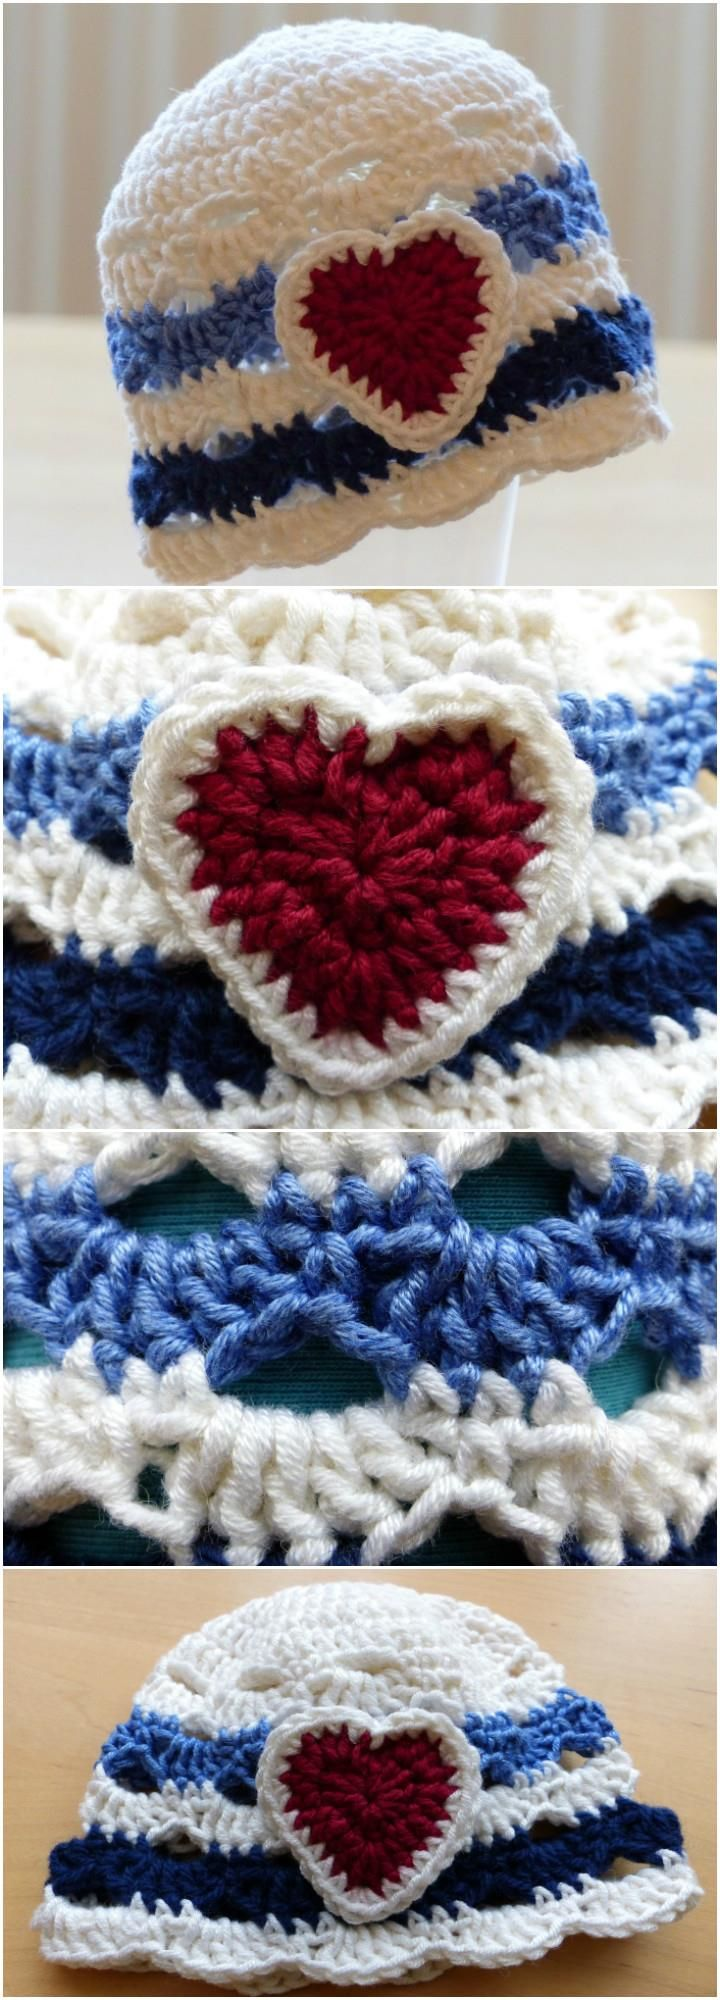 Crochet Love Heart Nautical Baby Hat - 17 Free Crochet Baby Beanie Hat Patterns | 101 Crochet